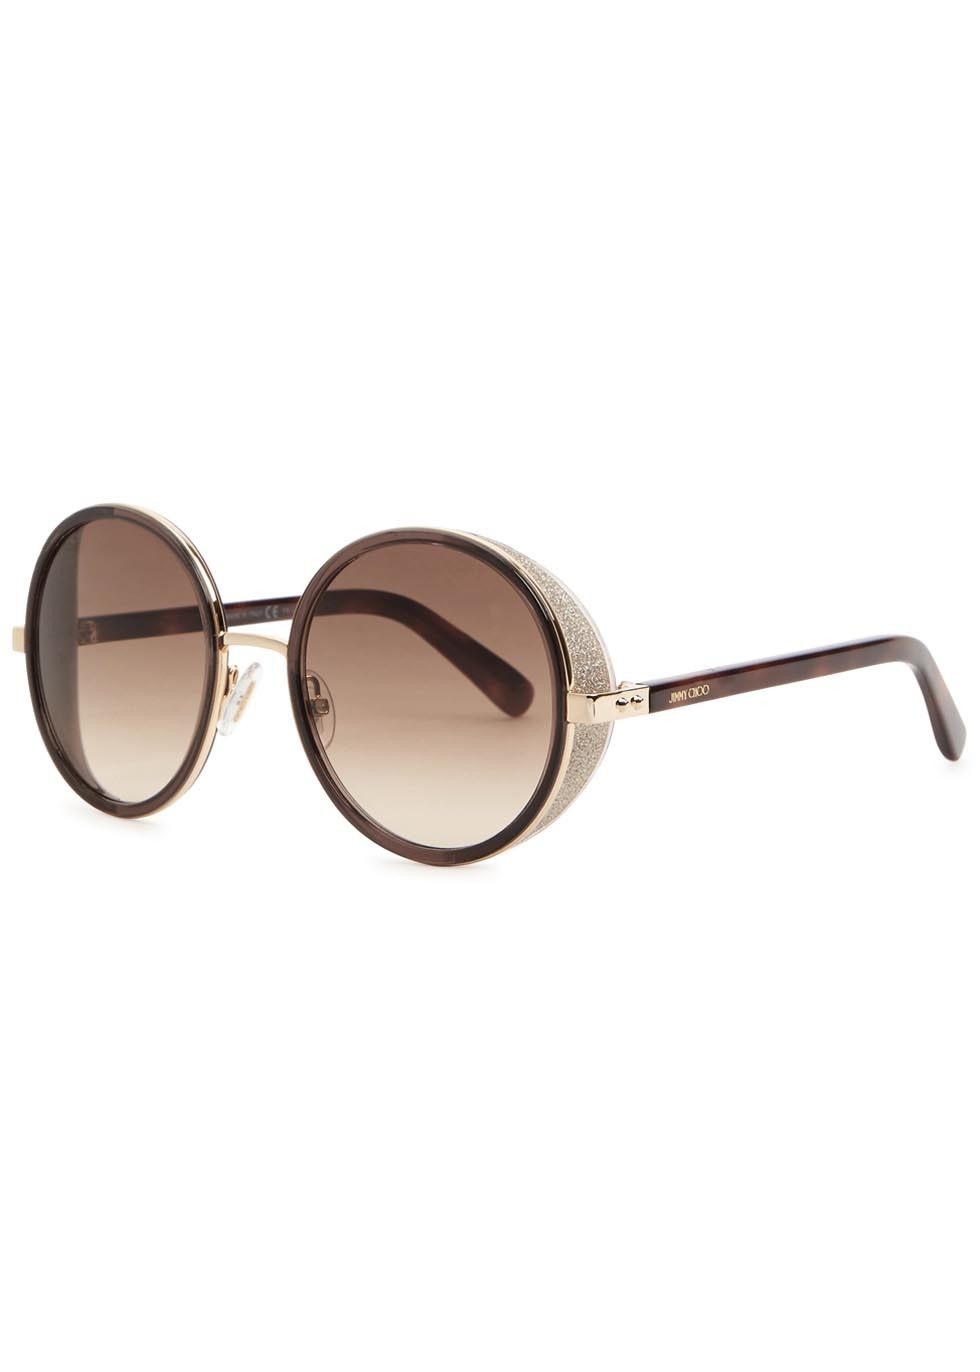 Andie Brown Mirrored Sunglasses - predominant colour: chocolate brown; secondary colour: stone; occasions: casual, holiday; style: round; size: large; material: plastic/rubber; finish: plain; pattern: colourblock; season: a/w 2015